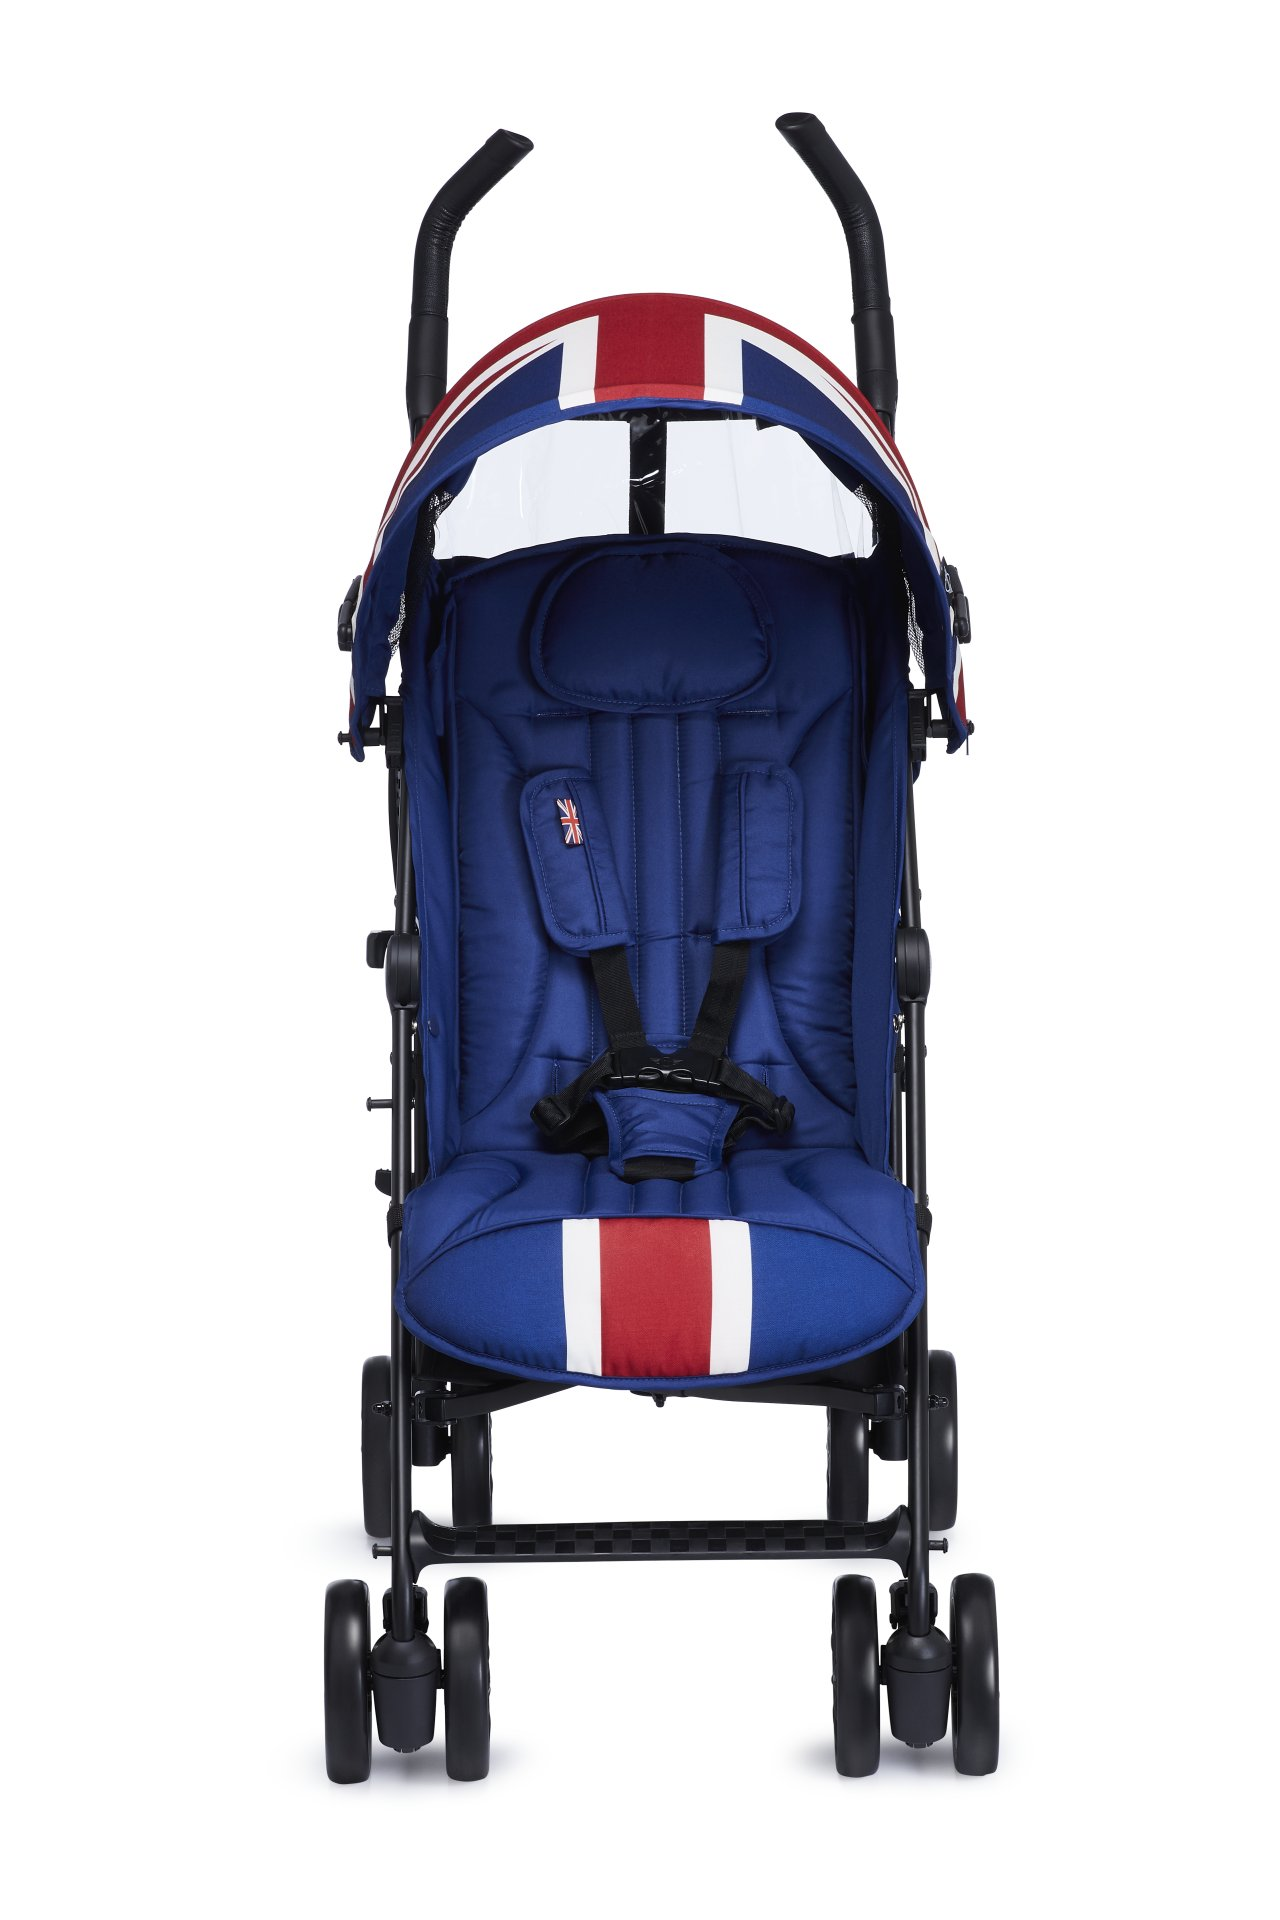 mini buggy by easywalker 2018 union jack classic buy at. Black Bedroom Furniture Sets. Home Design Ideas